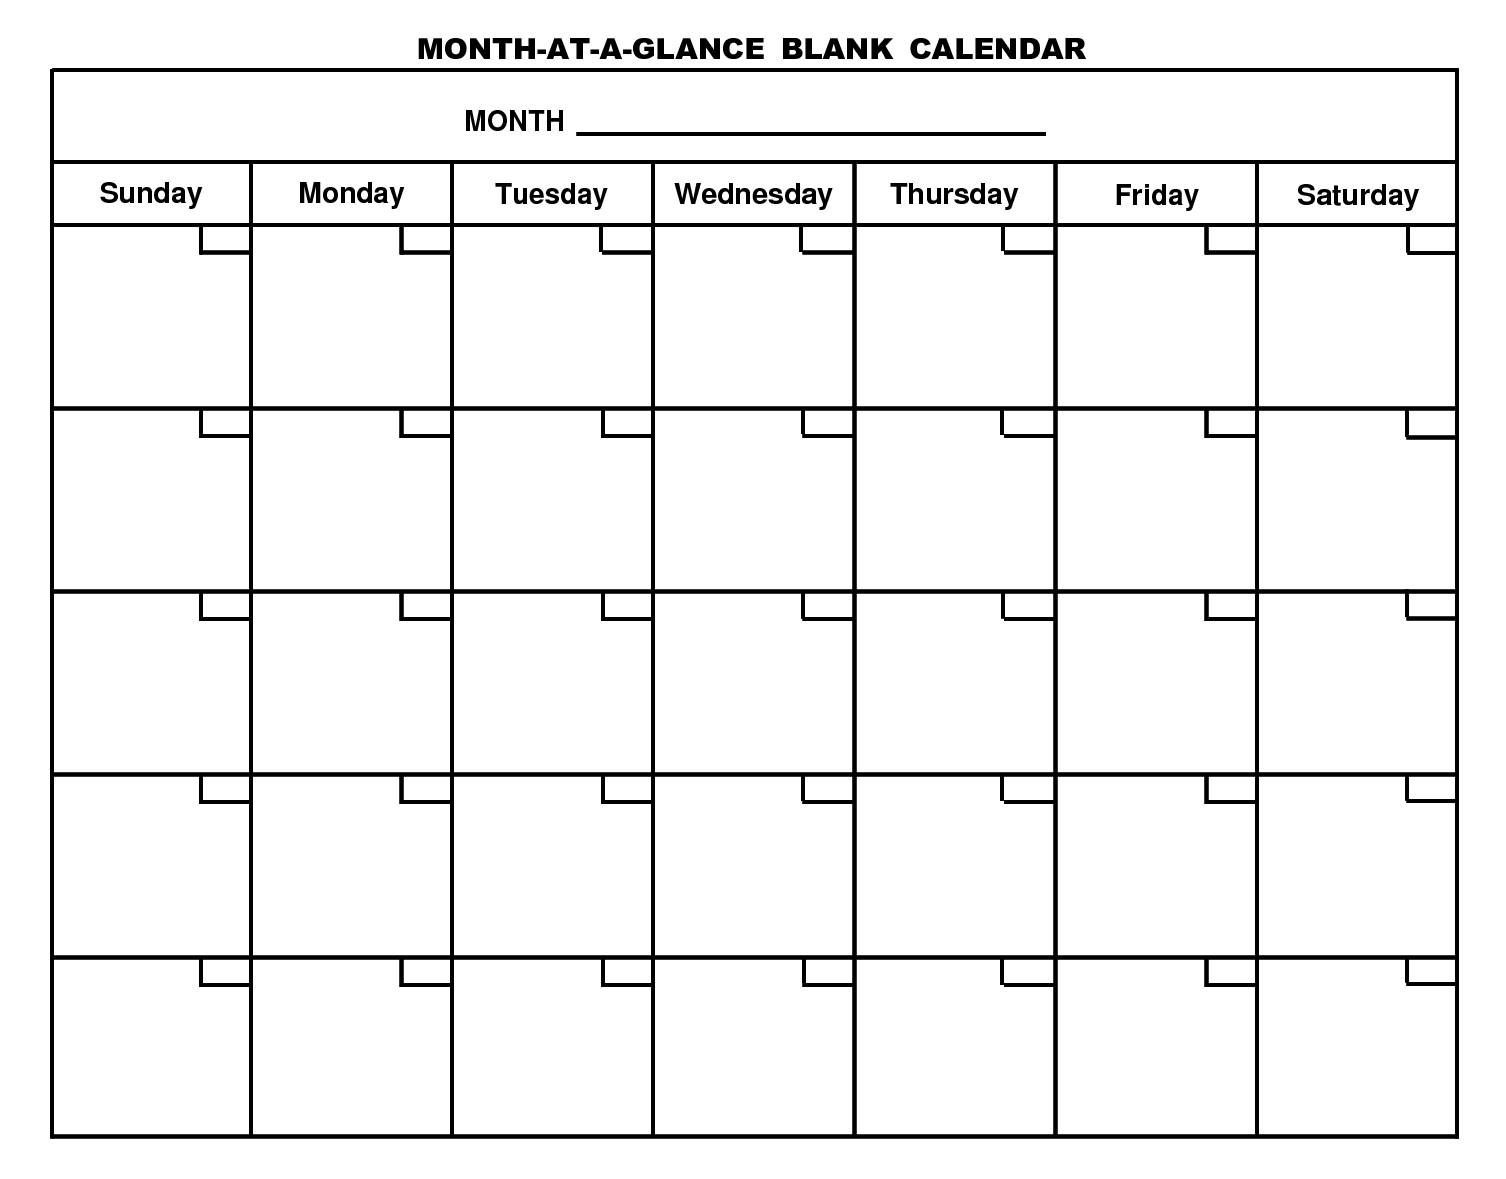 Month At A Glance Blank Calendar | Monthly Printable Calender